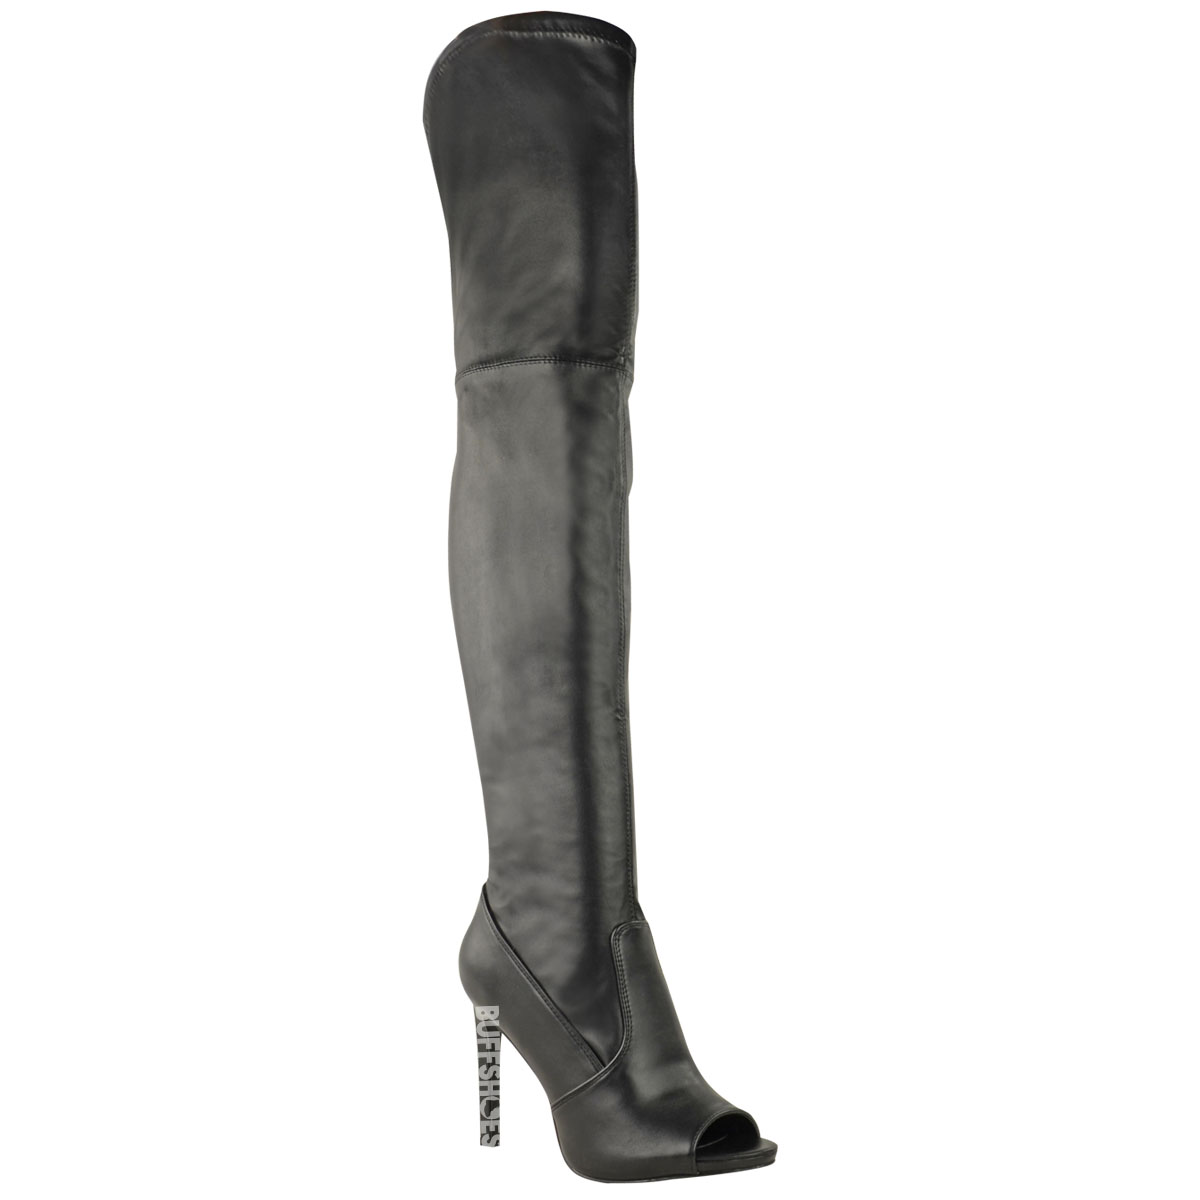 WOMENS LADIES THIGH HIGH OVER THE KNEE BOOTS PLATFORM HIGH HEELS SEXY NEW SIZE